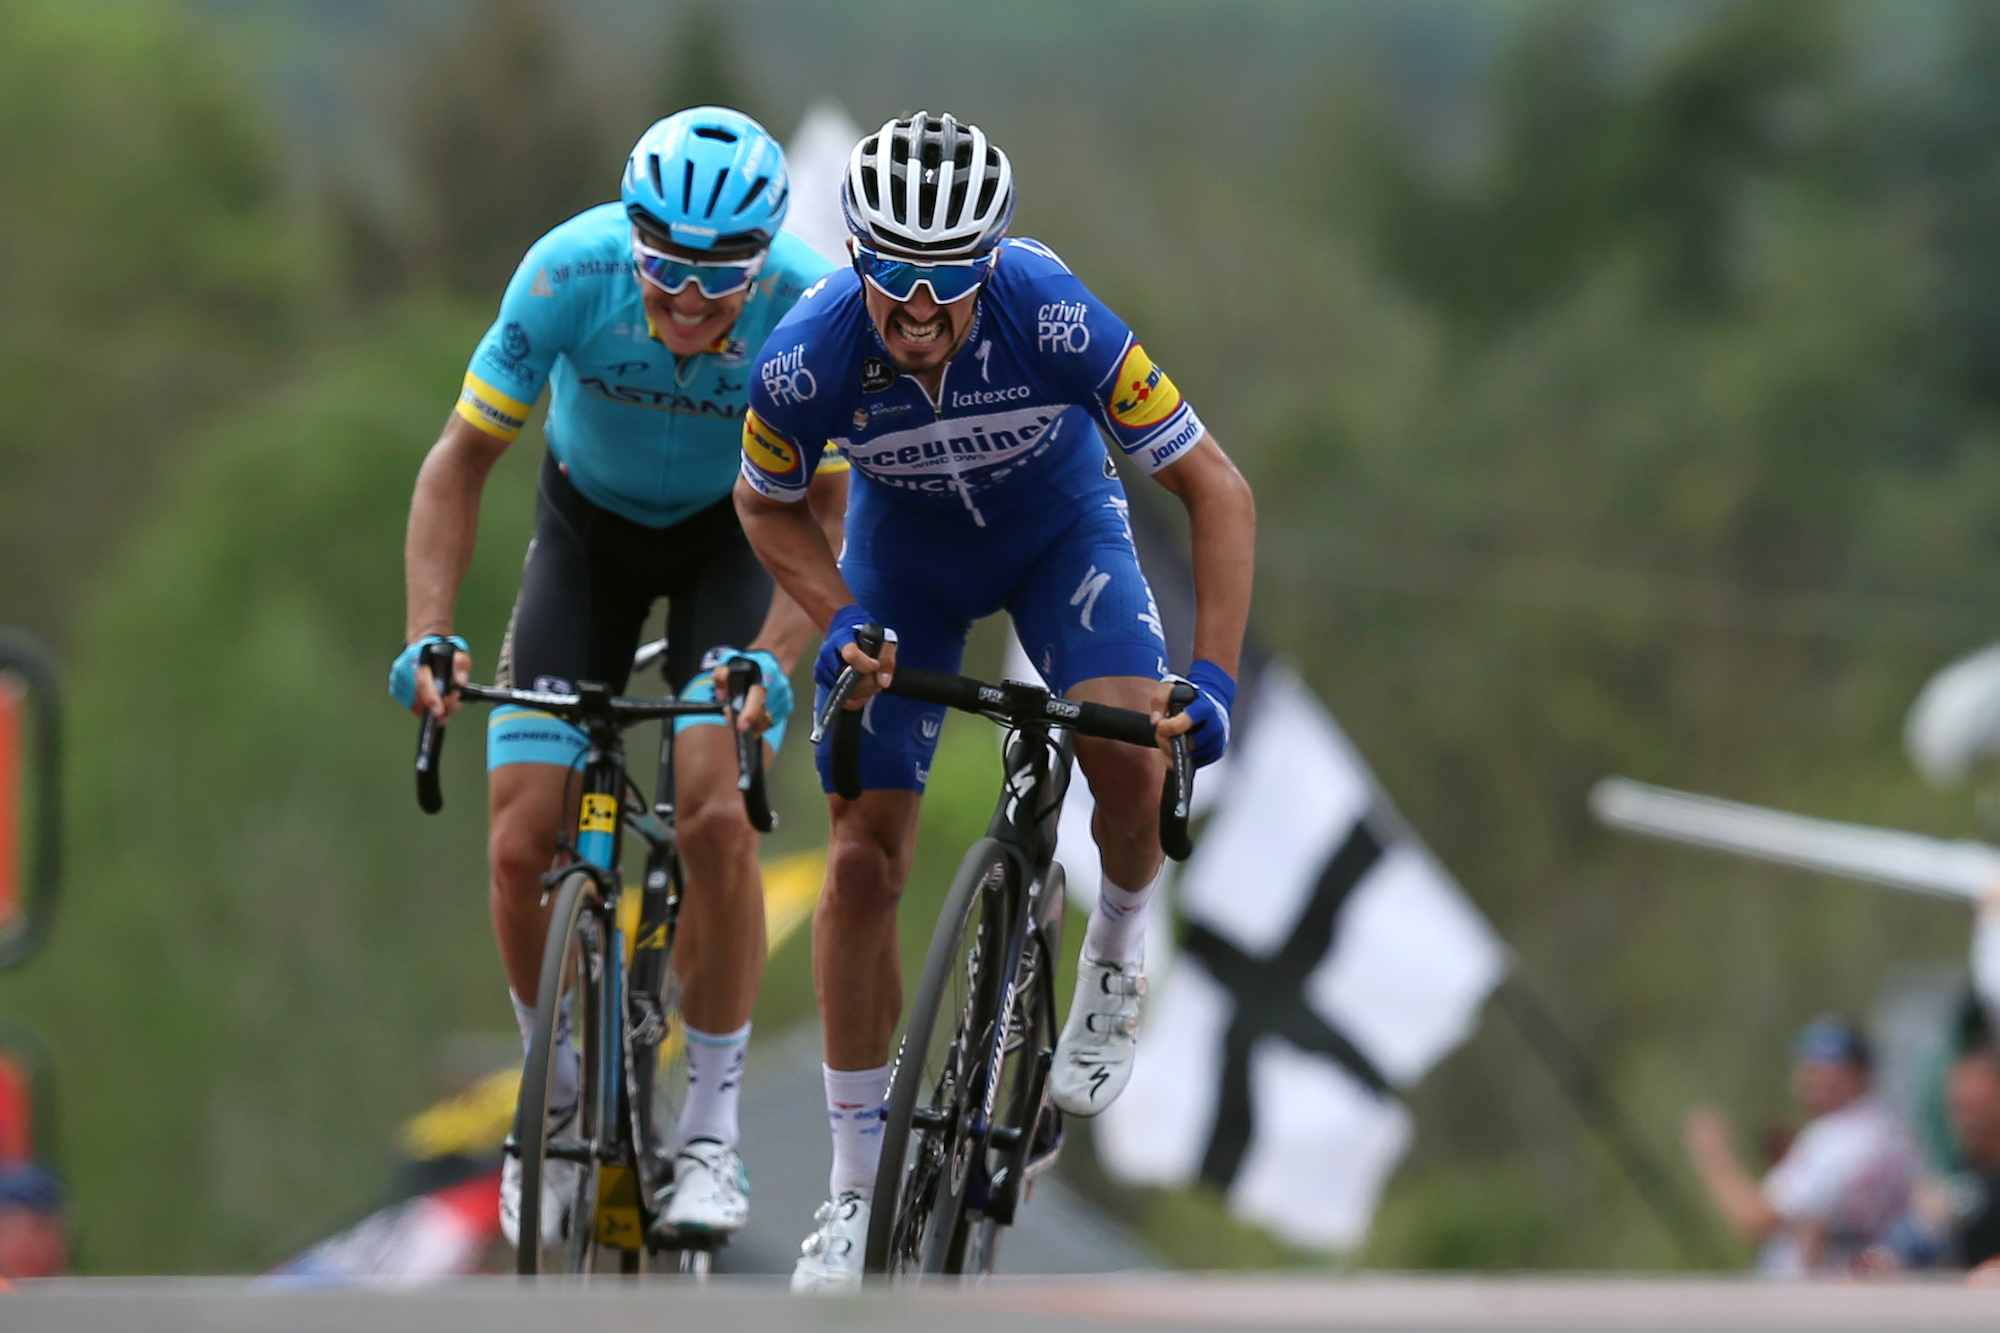 'Julian Alaphilippe is too strong': Jakob Fuglsang misses ...